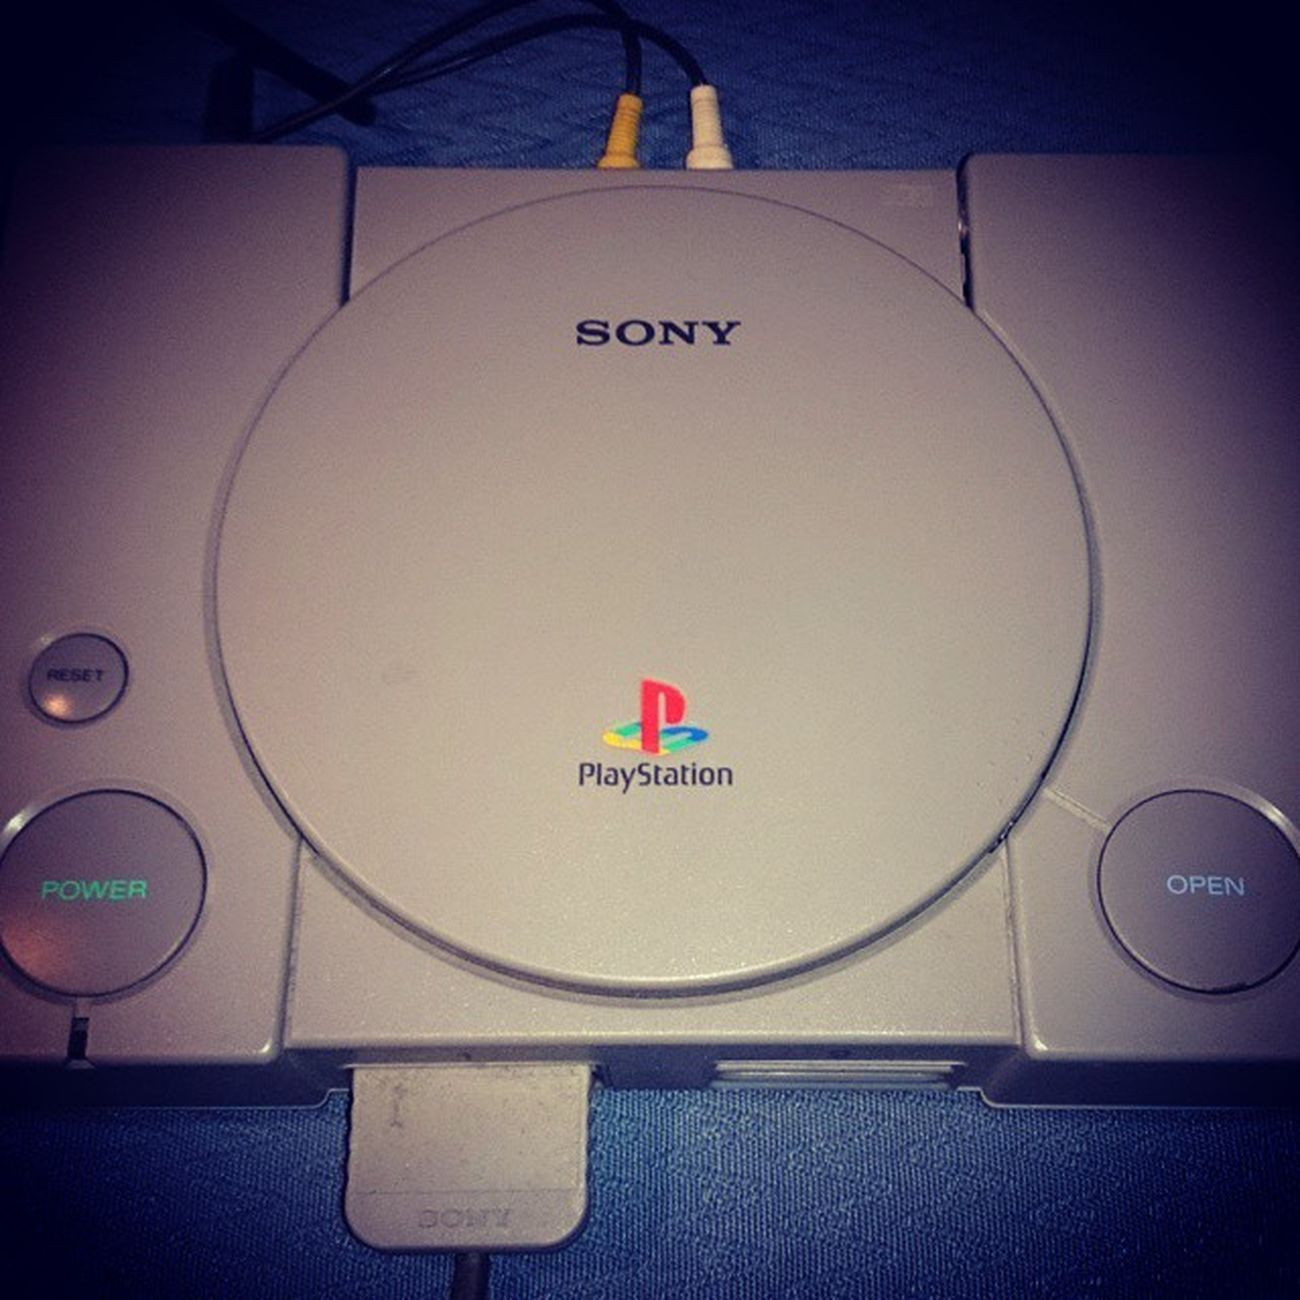 Playstation Retro Pelikonsolit Sony